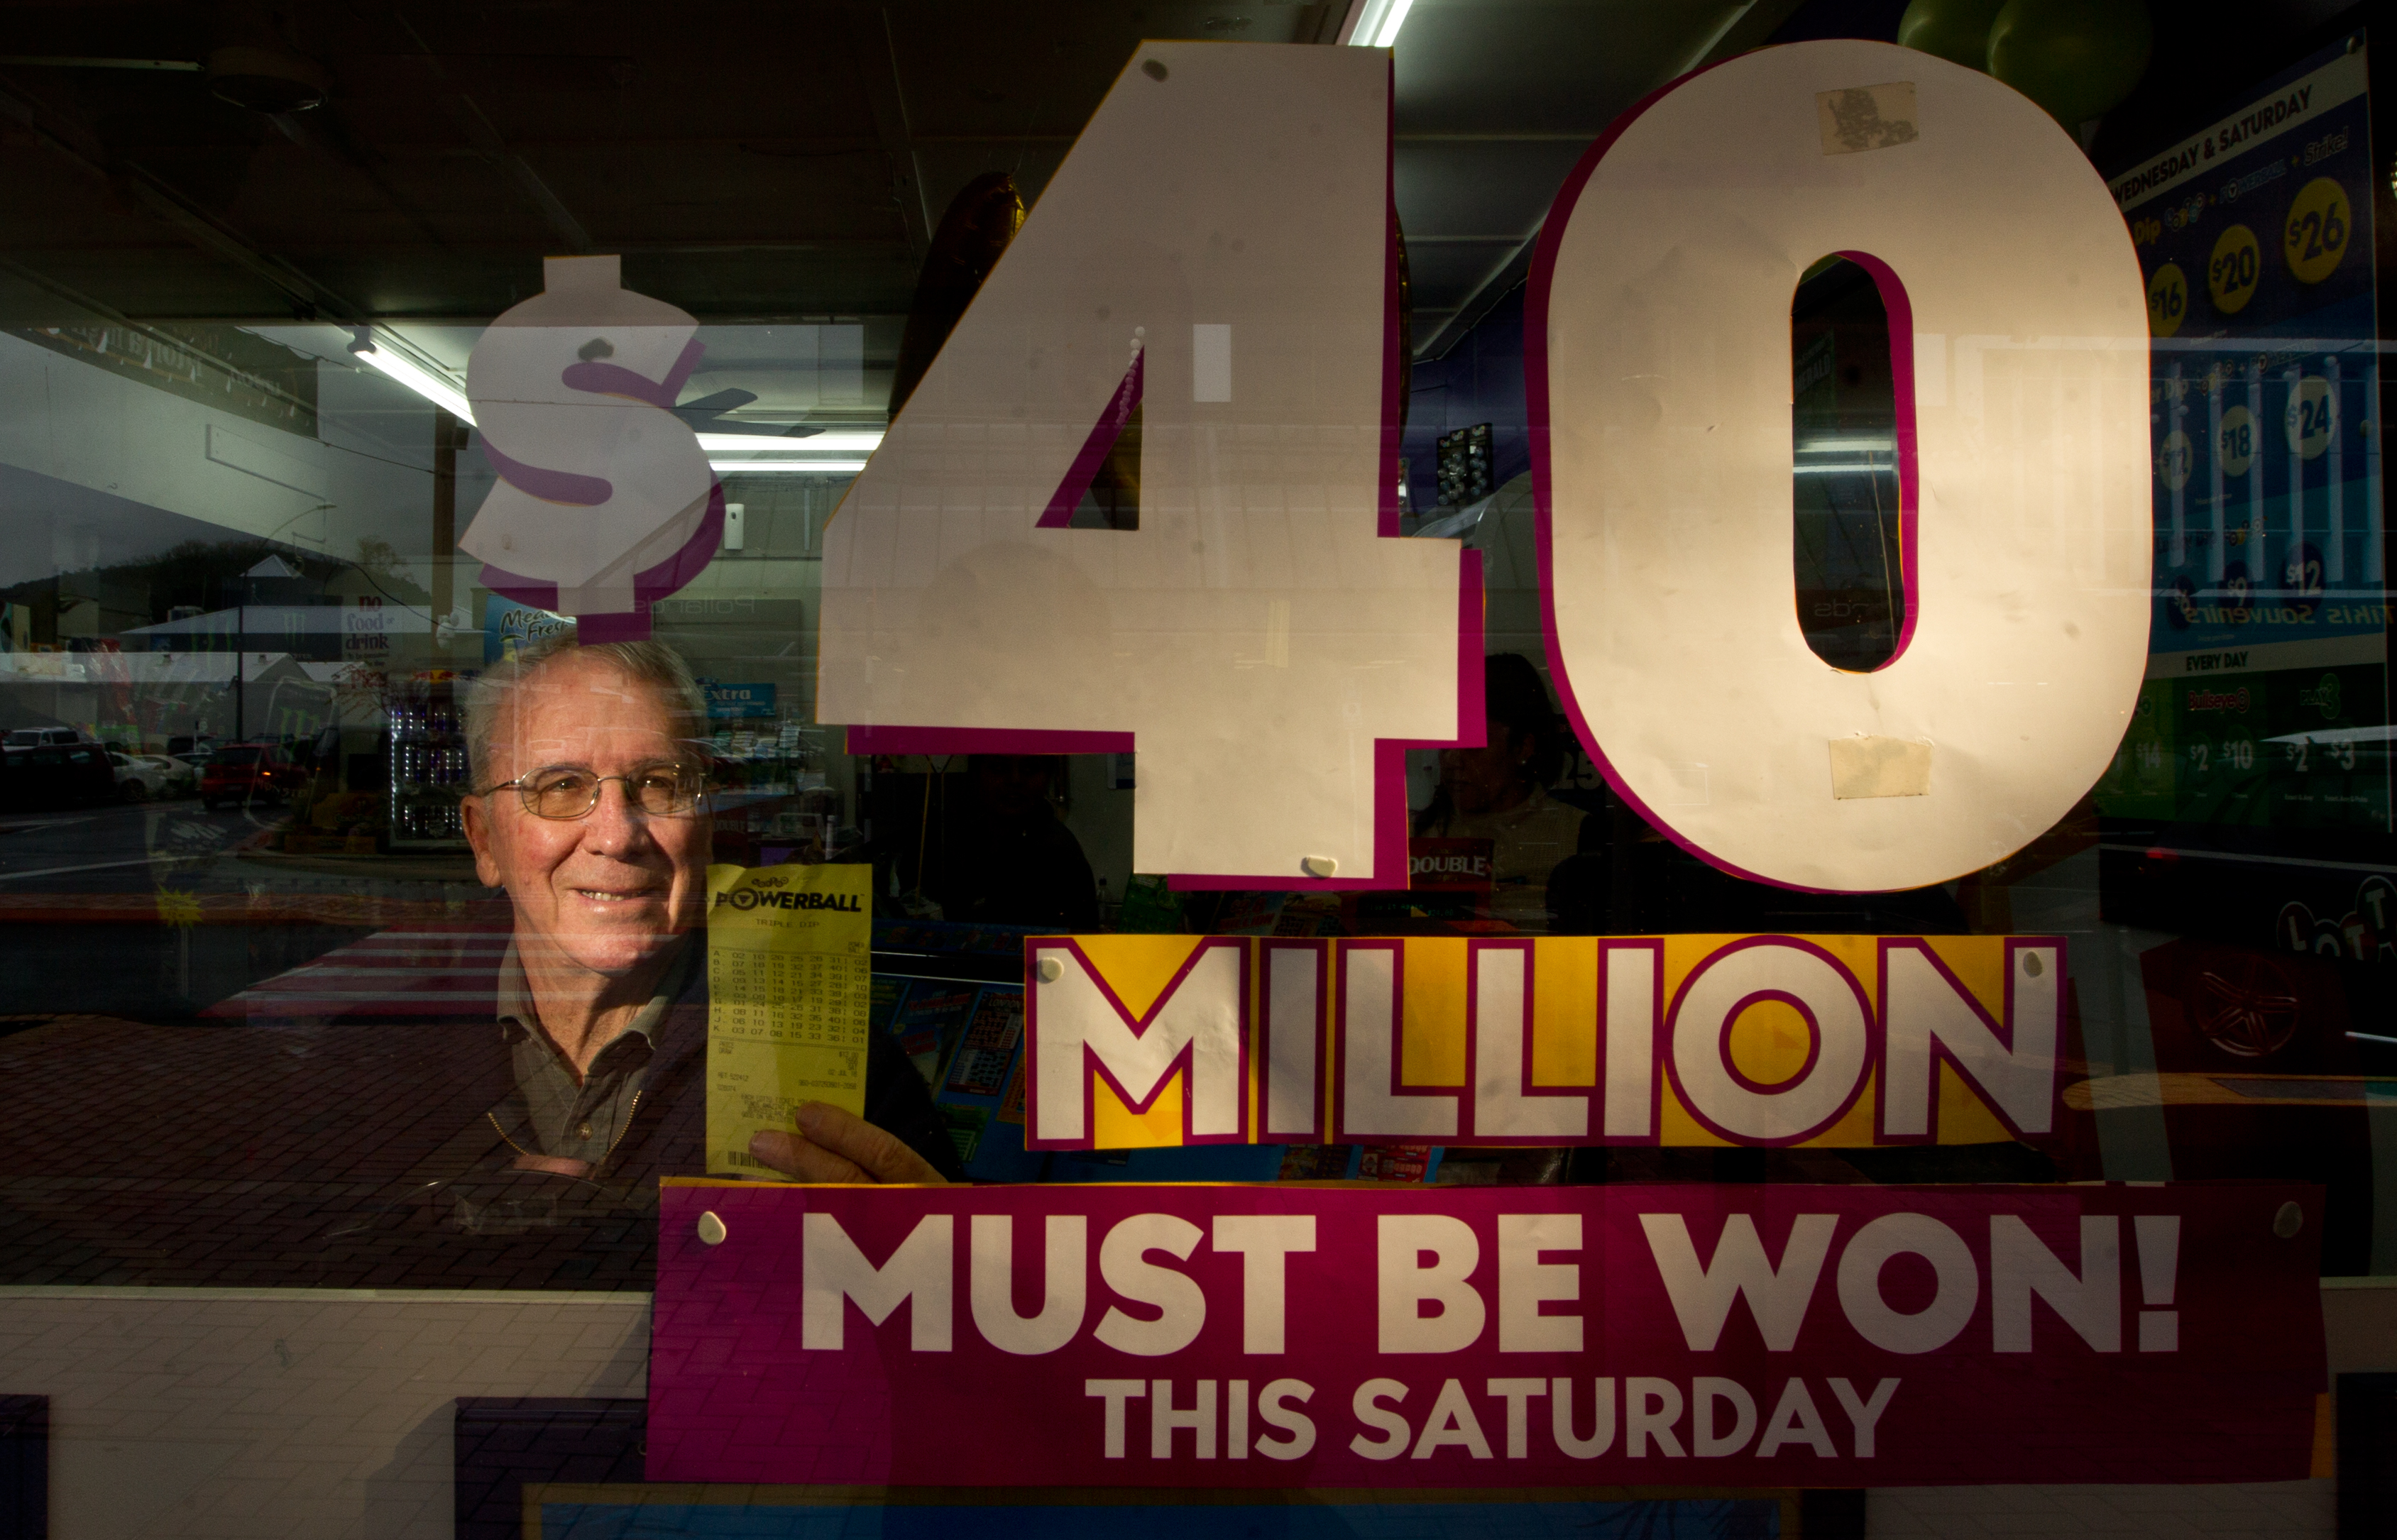 Lotto shop opens after-hours to check couple's winning ticket - NZ